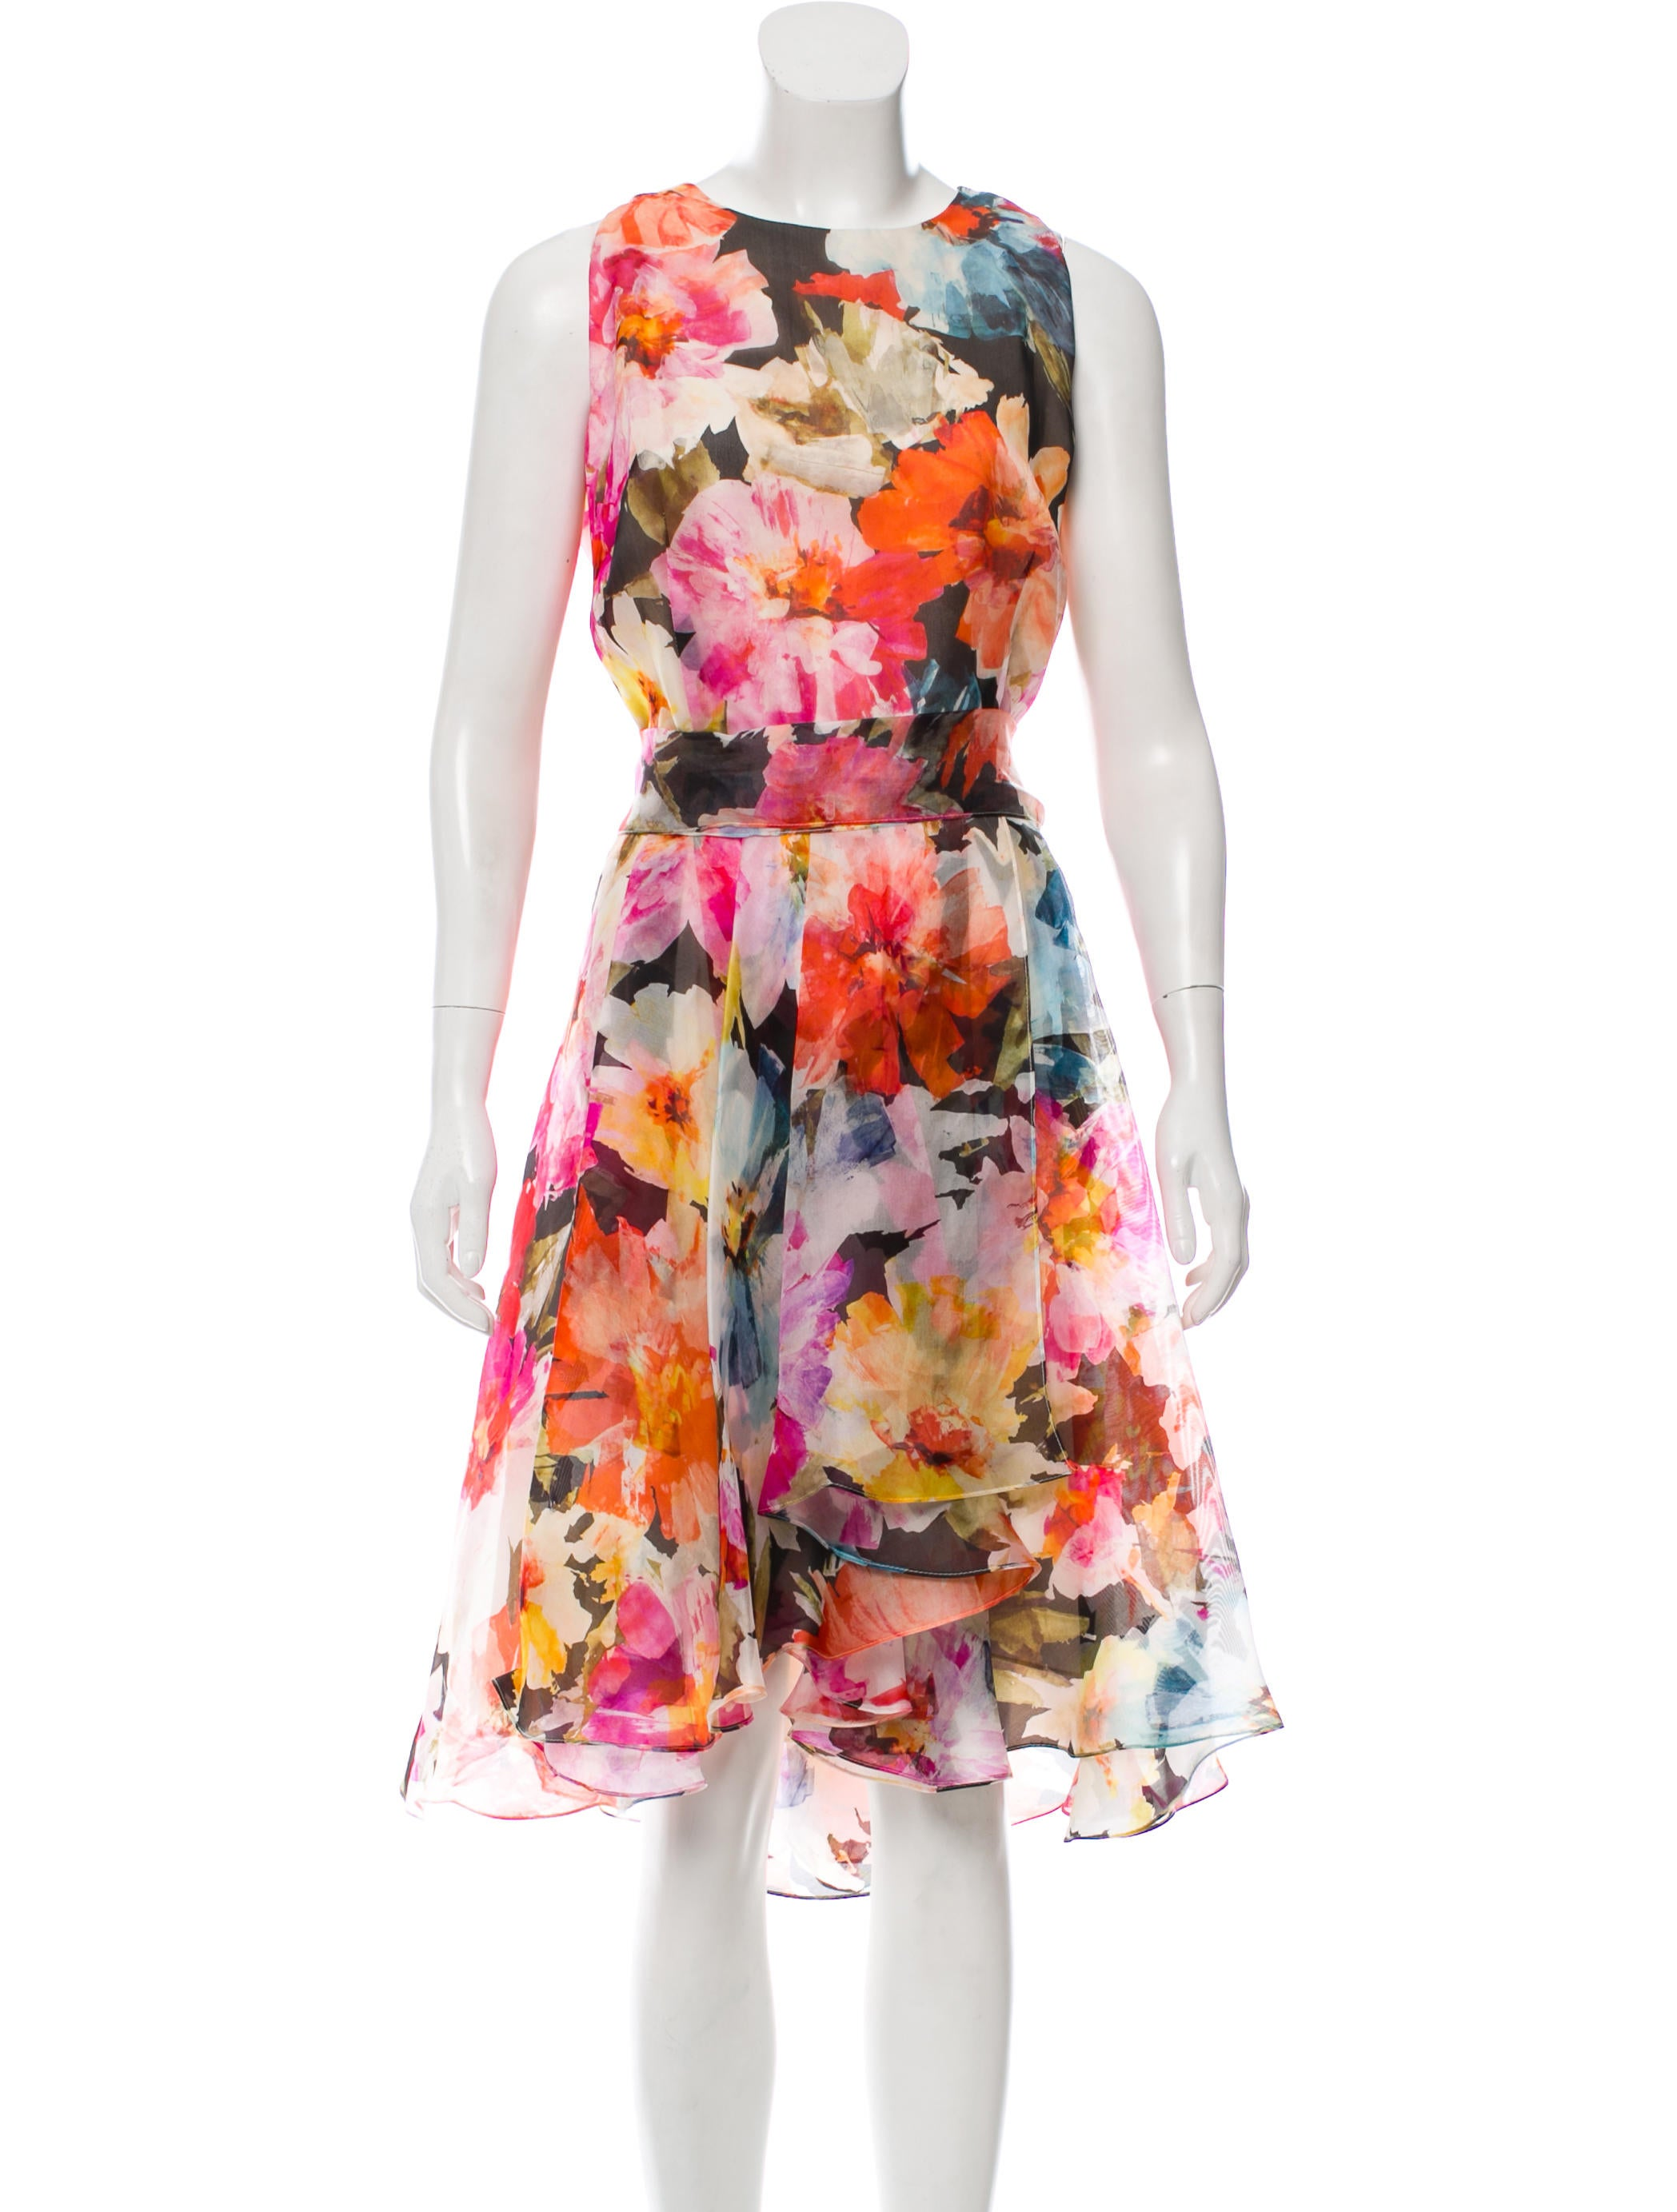 Carmen Marc Valvo Silk Floral Dress Clothing Cae21107 The Realreal